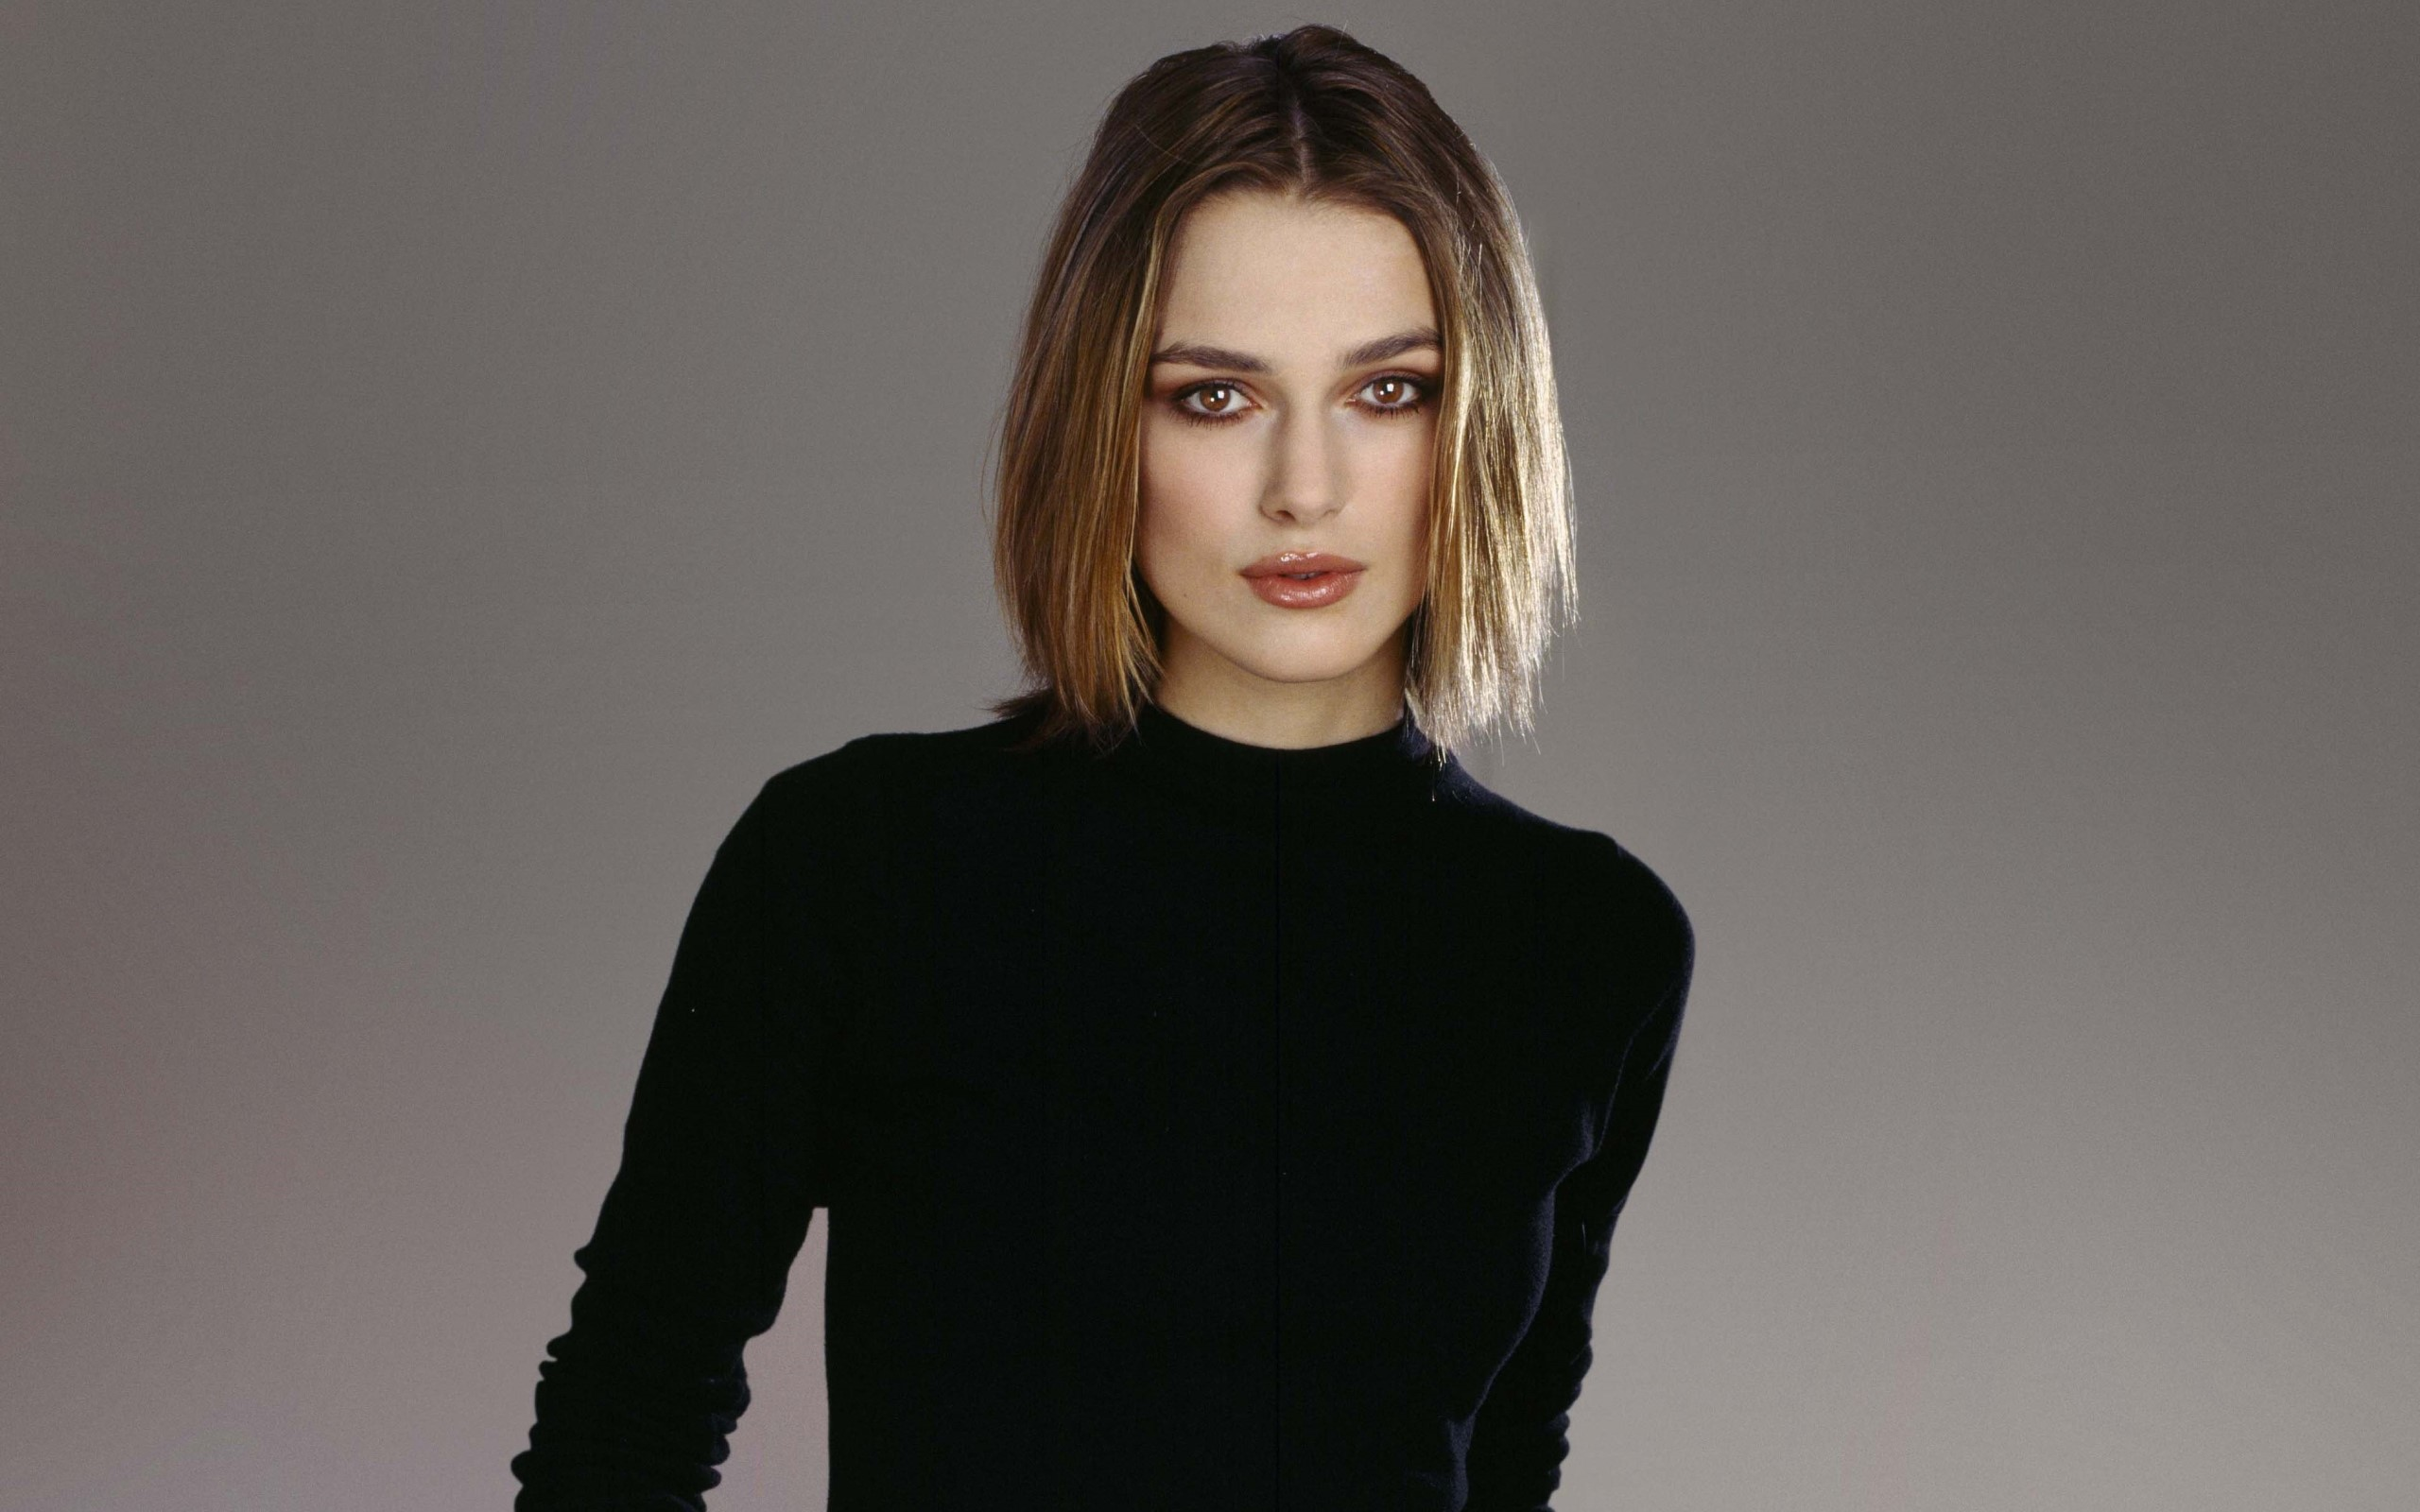 Keira Knightley Photos  Keira Knightley Photos